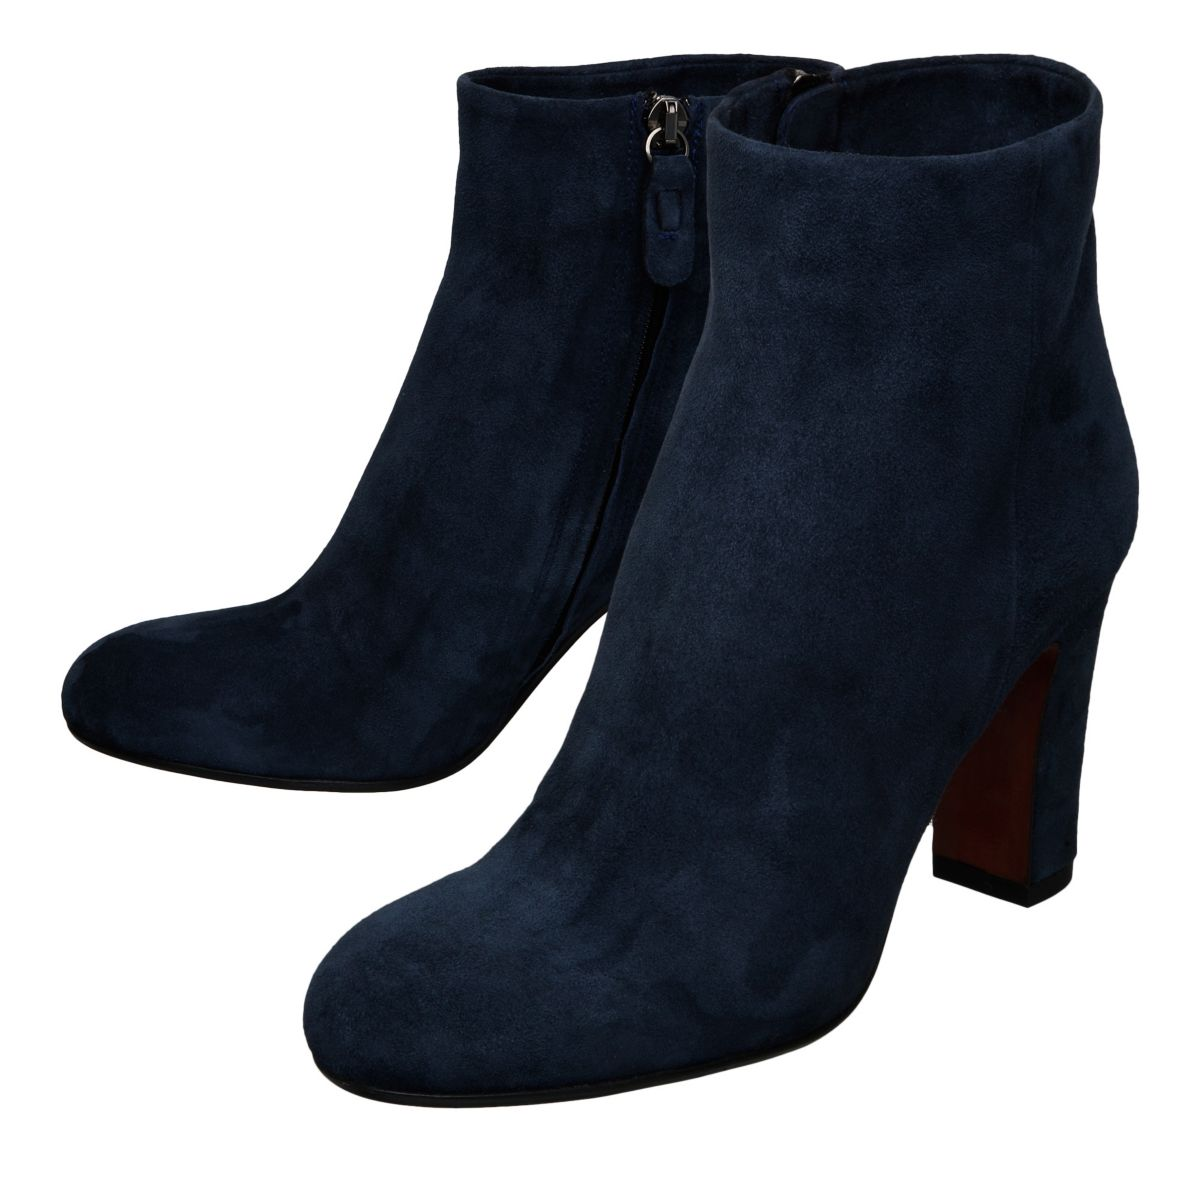 Free shipping BOTH ways on navy blue ankle boots for women, from our vast selection of styles. Fast delivery, and 24/7/ real-person service with a smile. Click or call